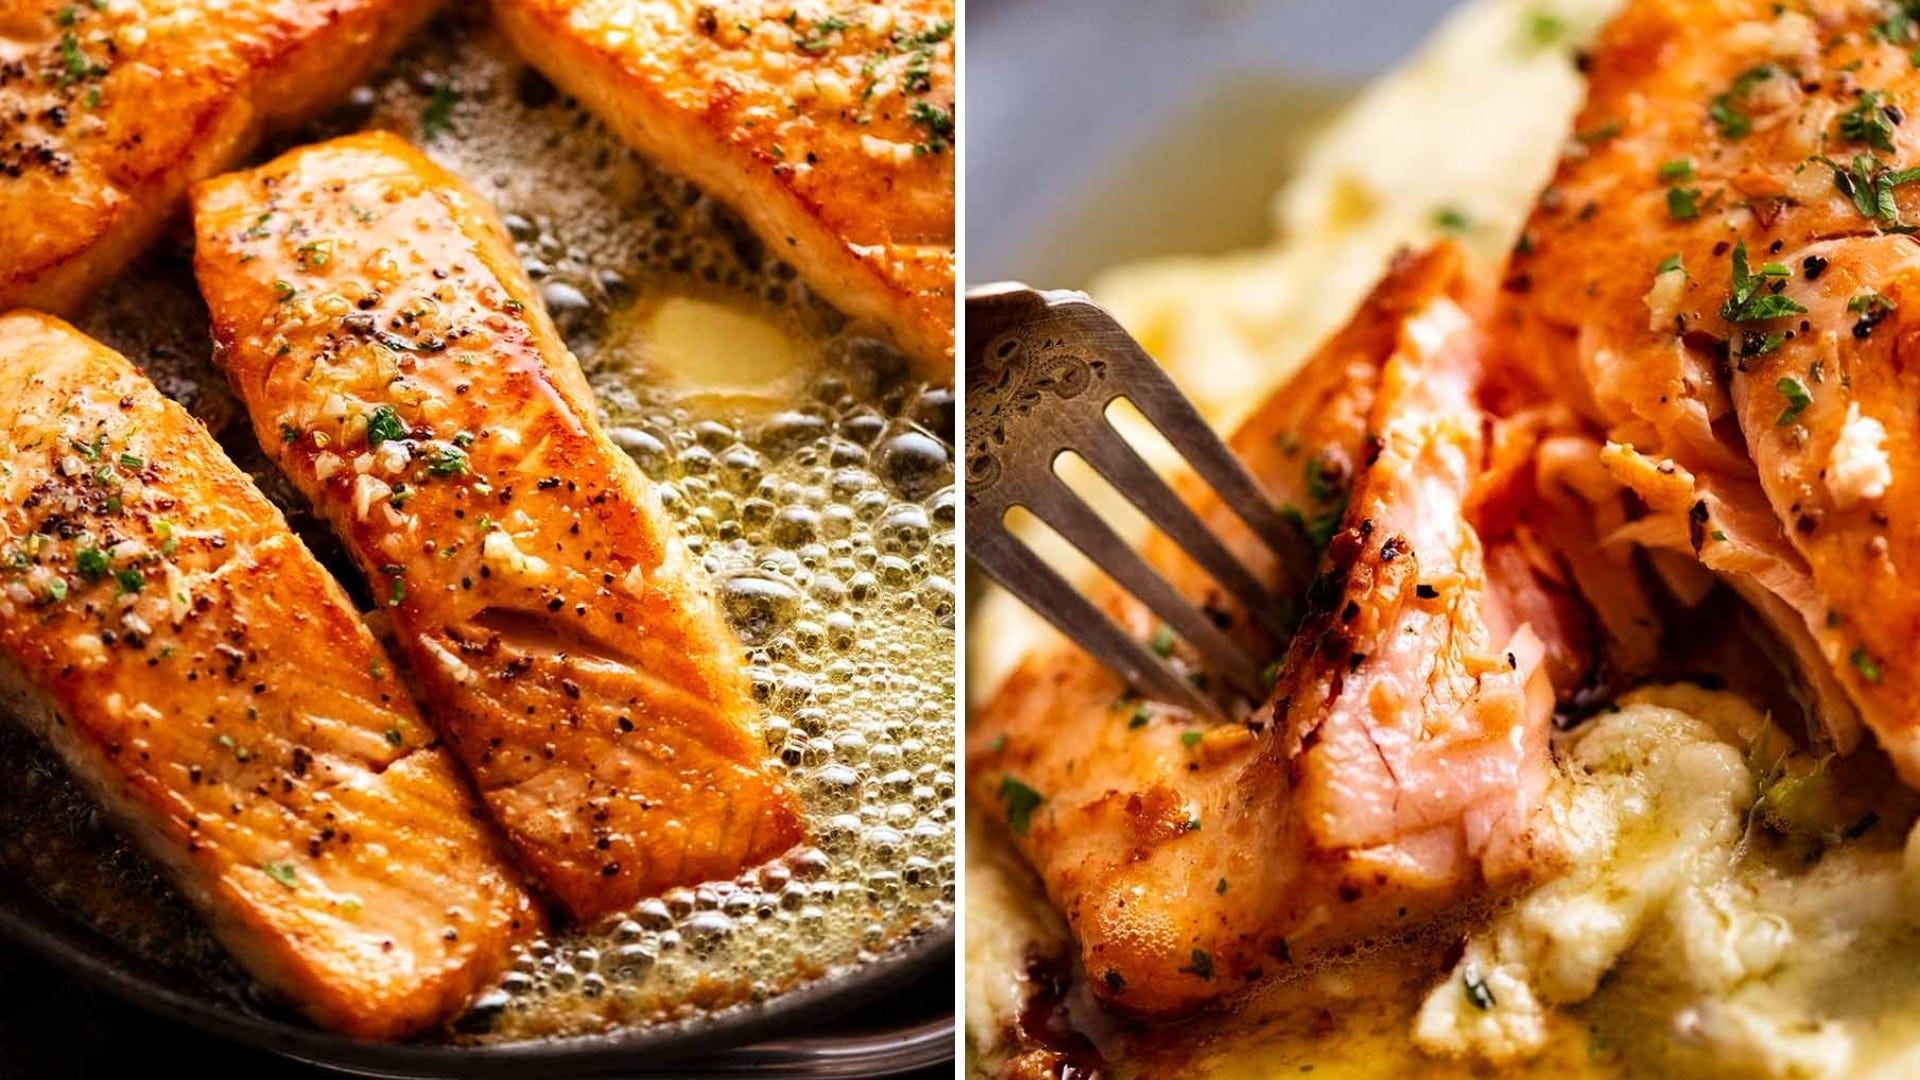 Salmon filets cook in a pan with butter and someone sticks their fork in a piece of salmon.